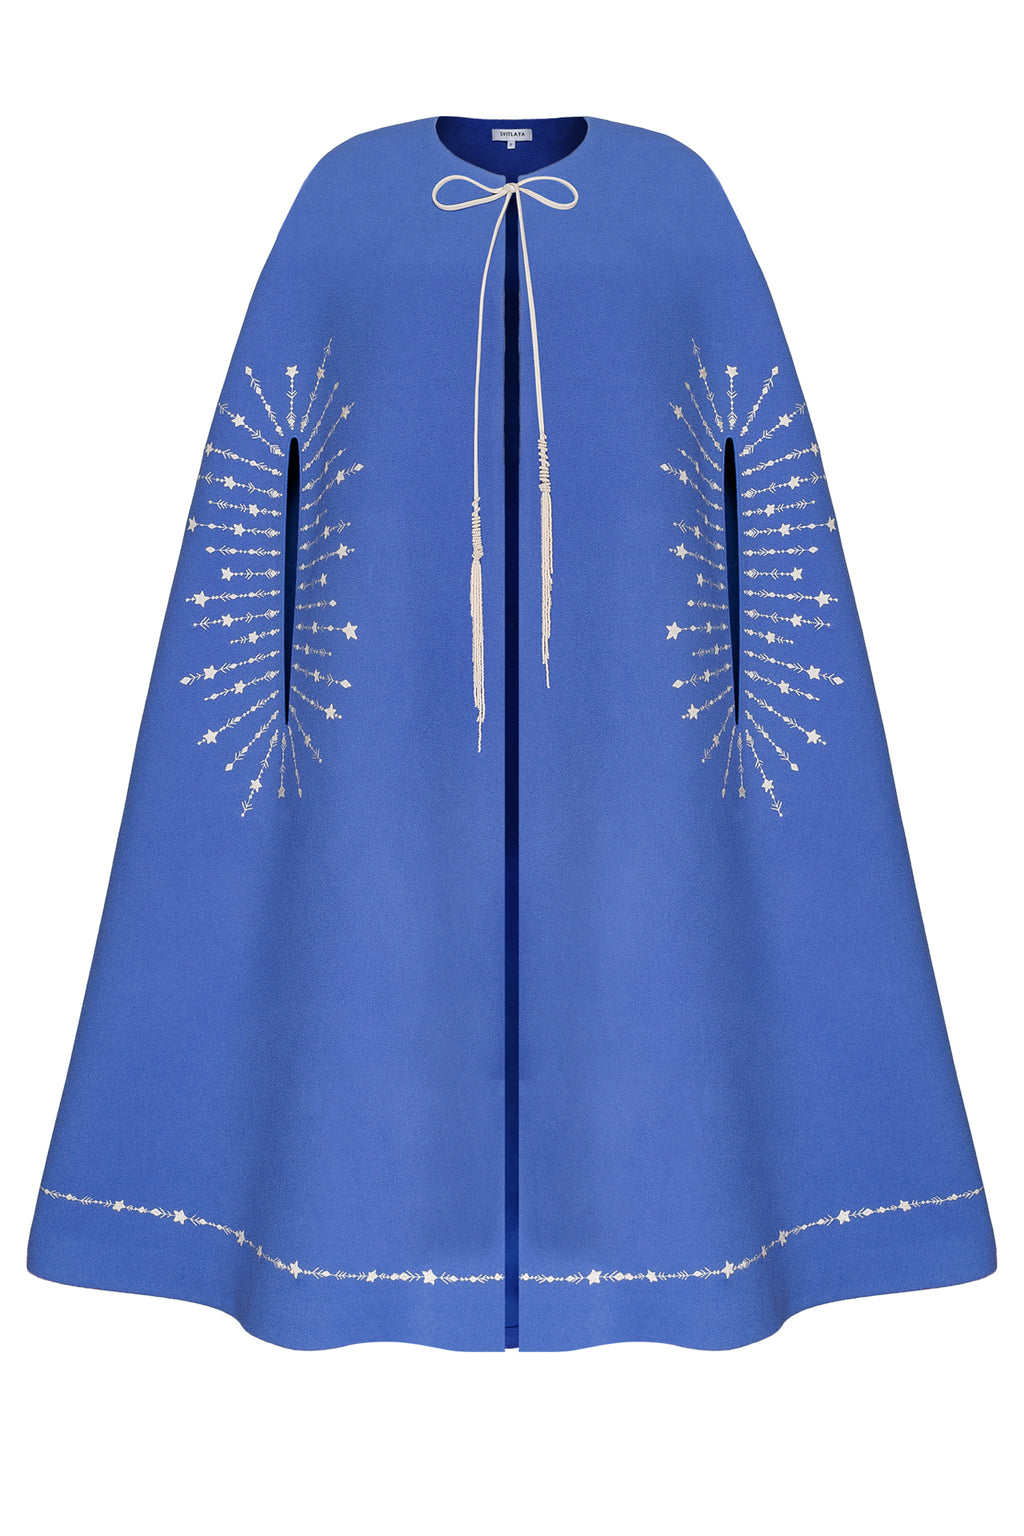 STARRY SKY blue cape